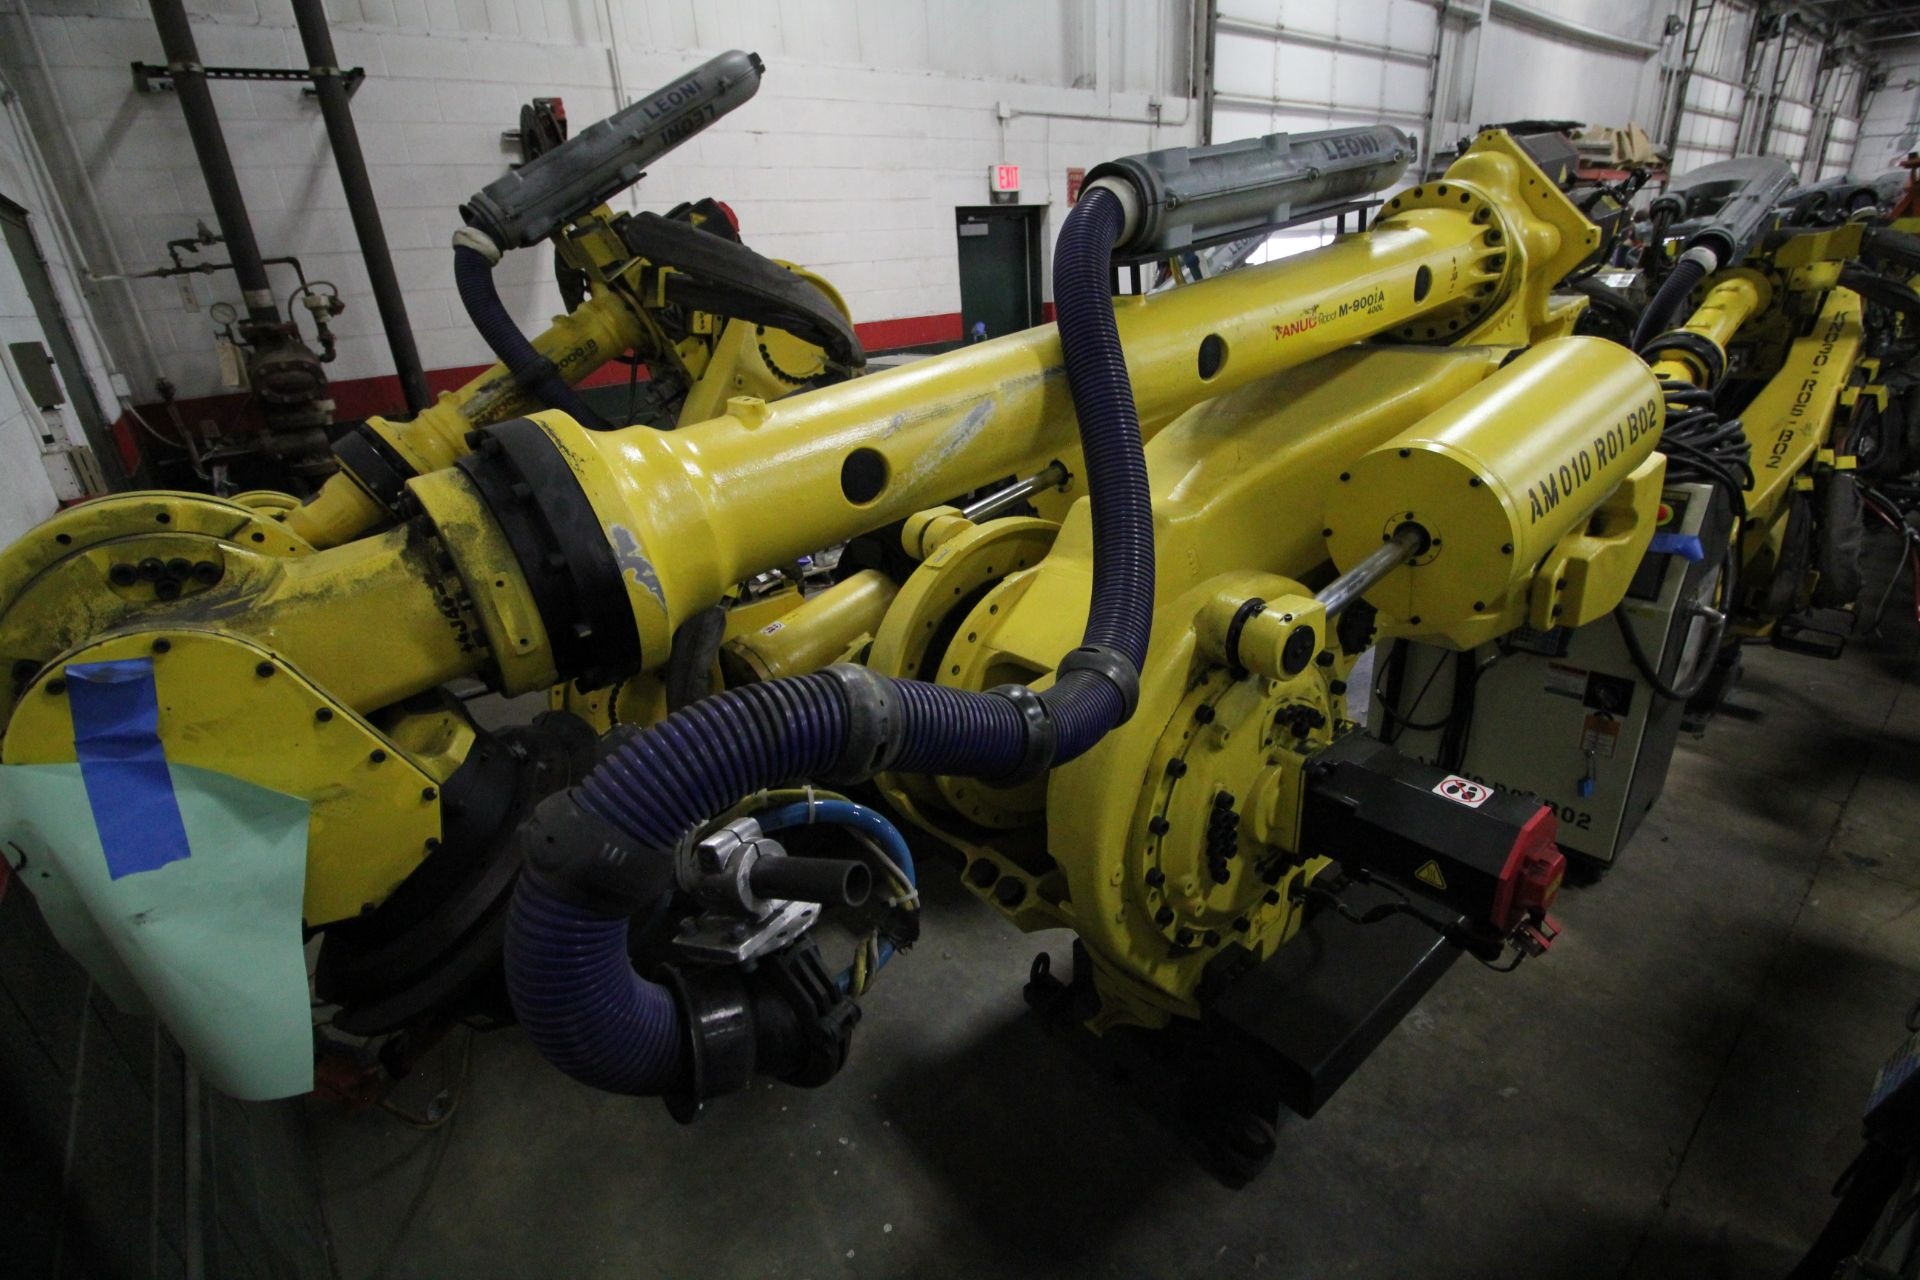 FANUC ROBOT M-900iA/400L WITH R-30iA CONTROLLER, TEACHPENDANT AND CABLES, SN 153431, YEAR 2014